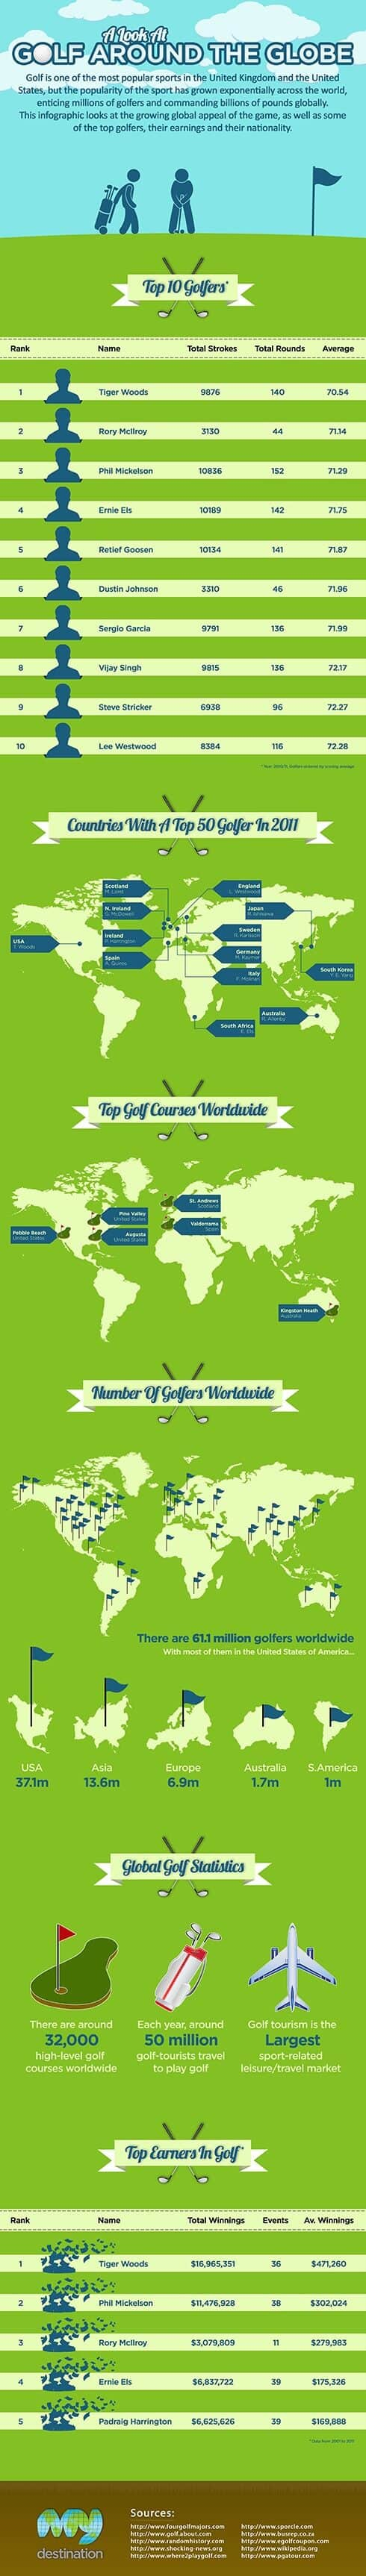 Infographie-Golf à travers le monde